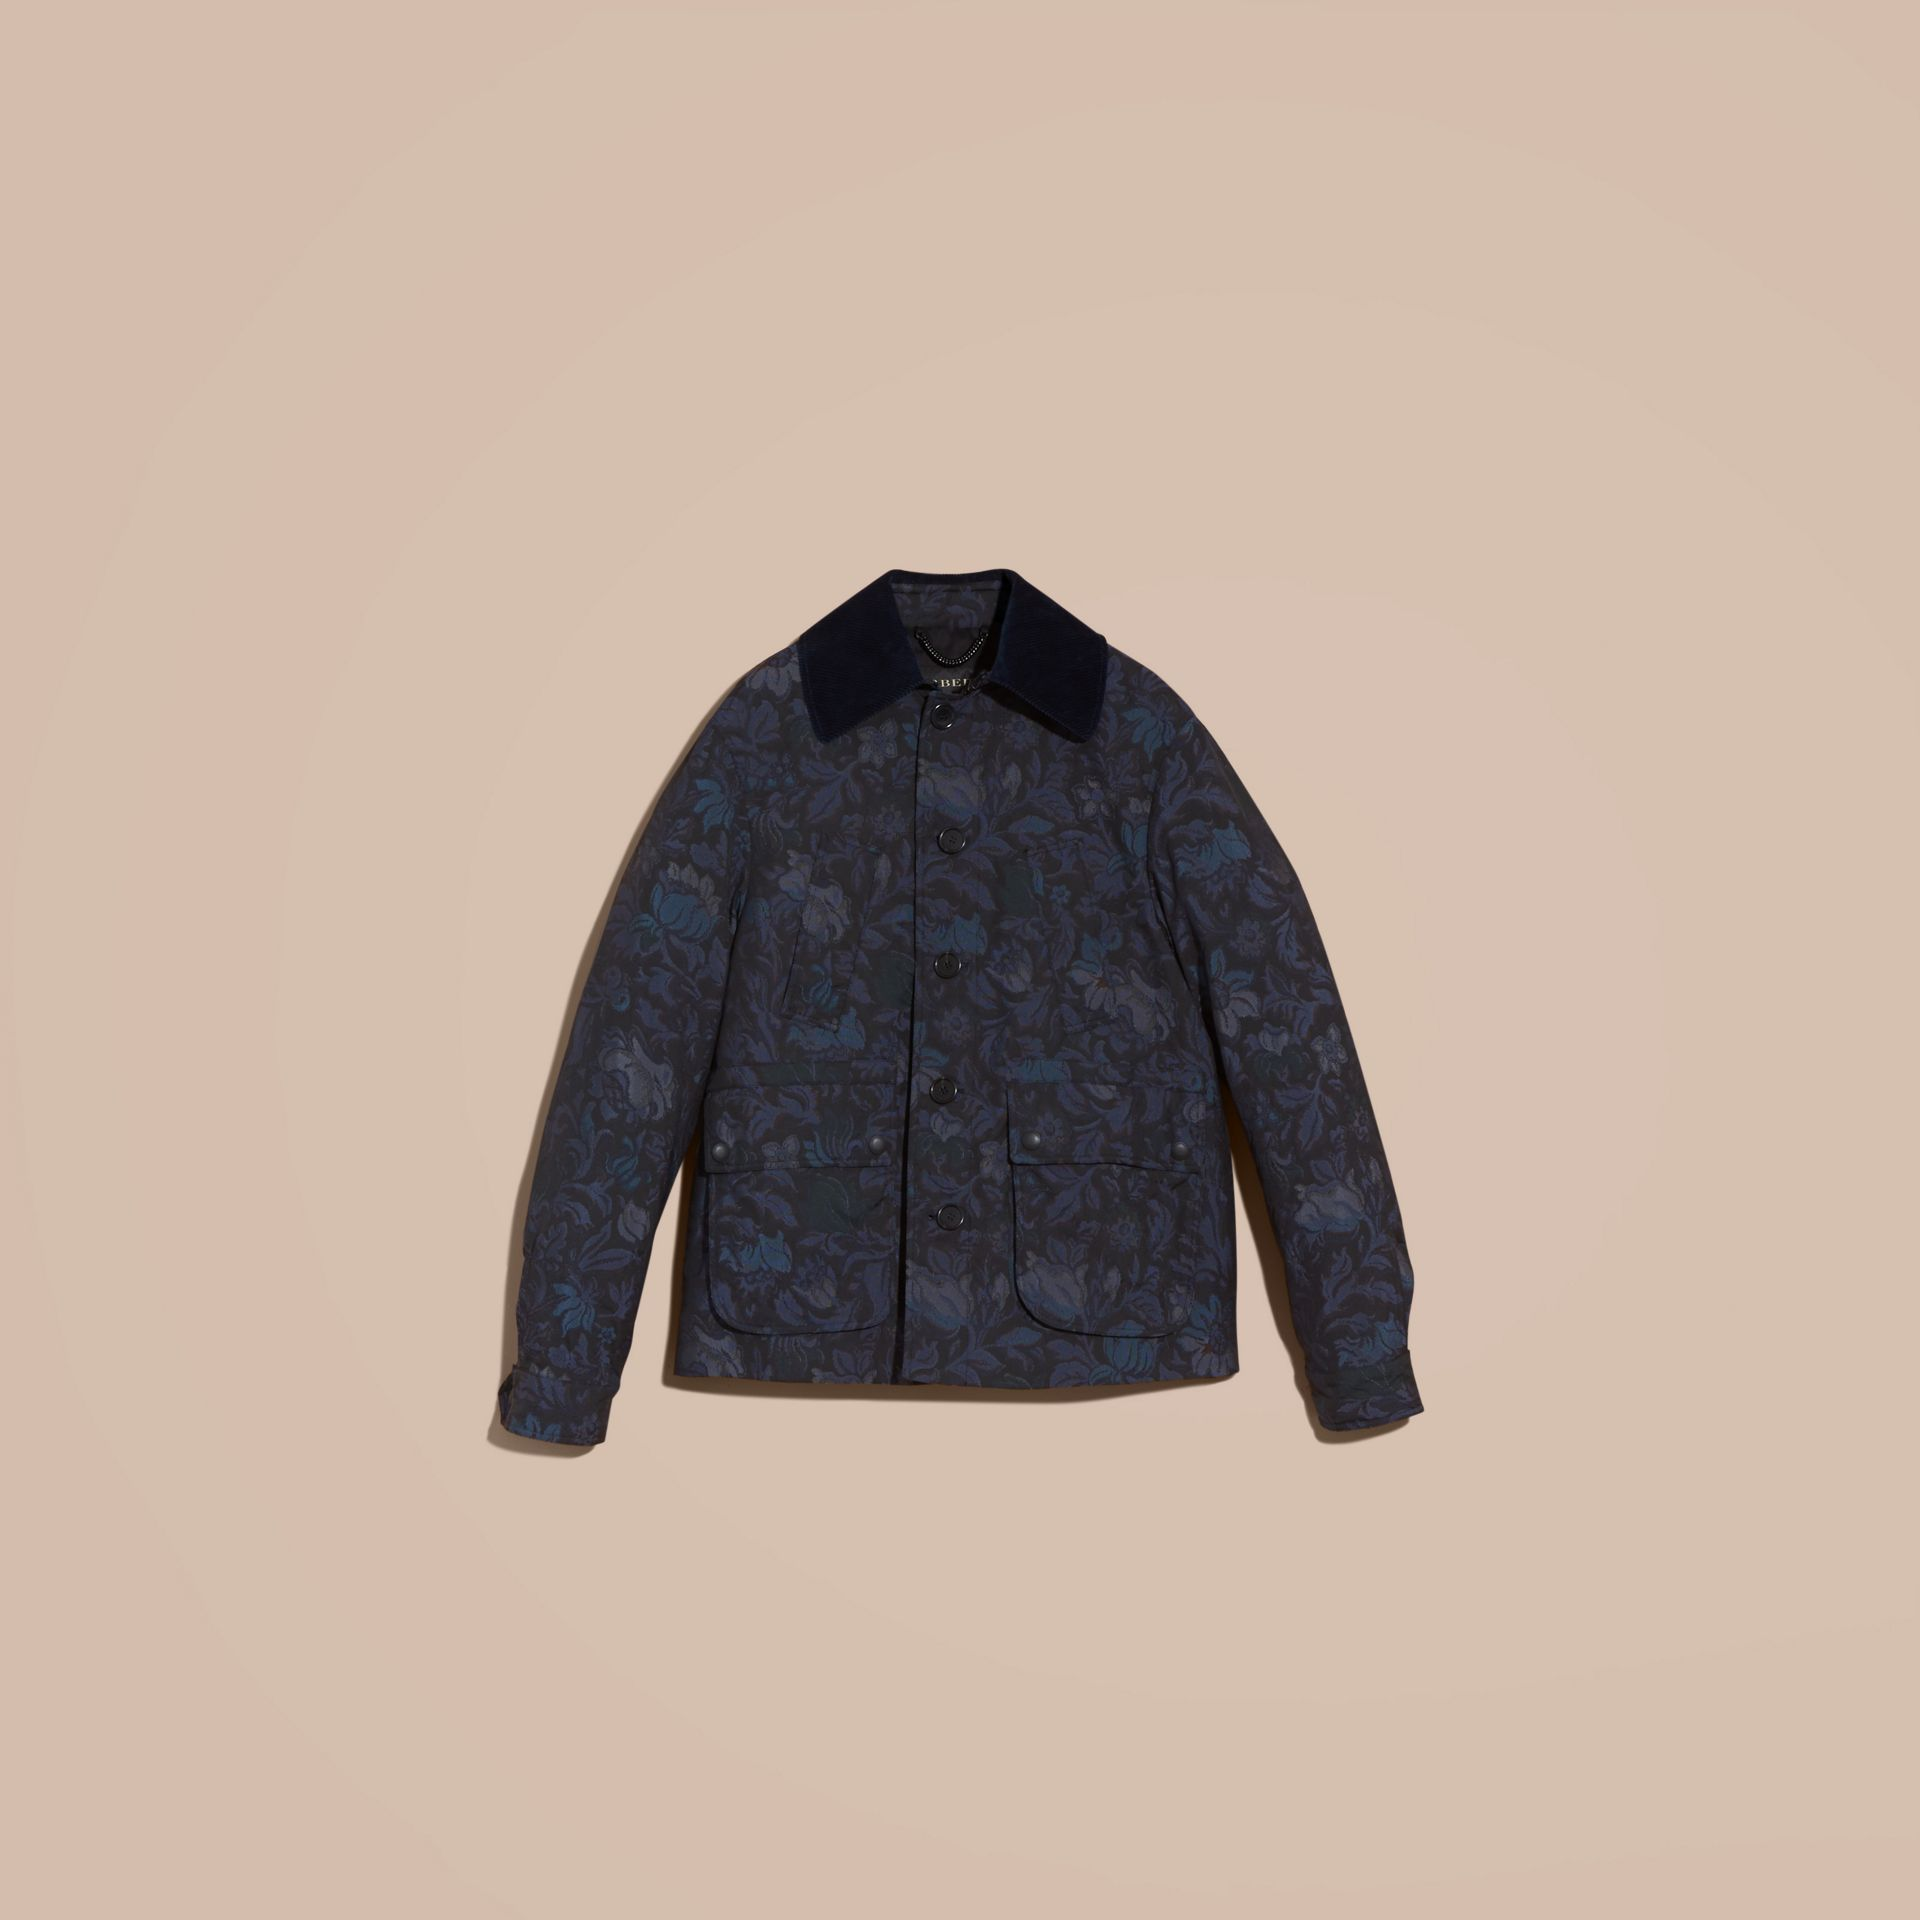 Navy Floral Jacquard Field Jacket with Corduroy Collar - gallery image 4